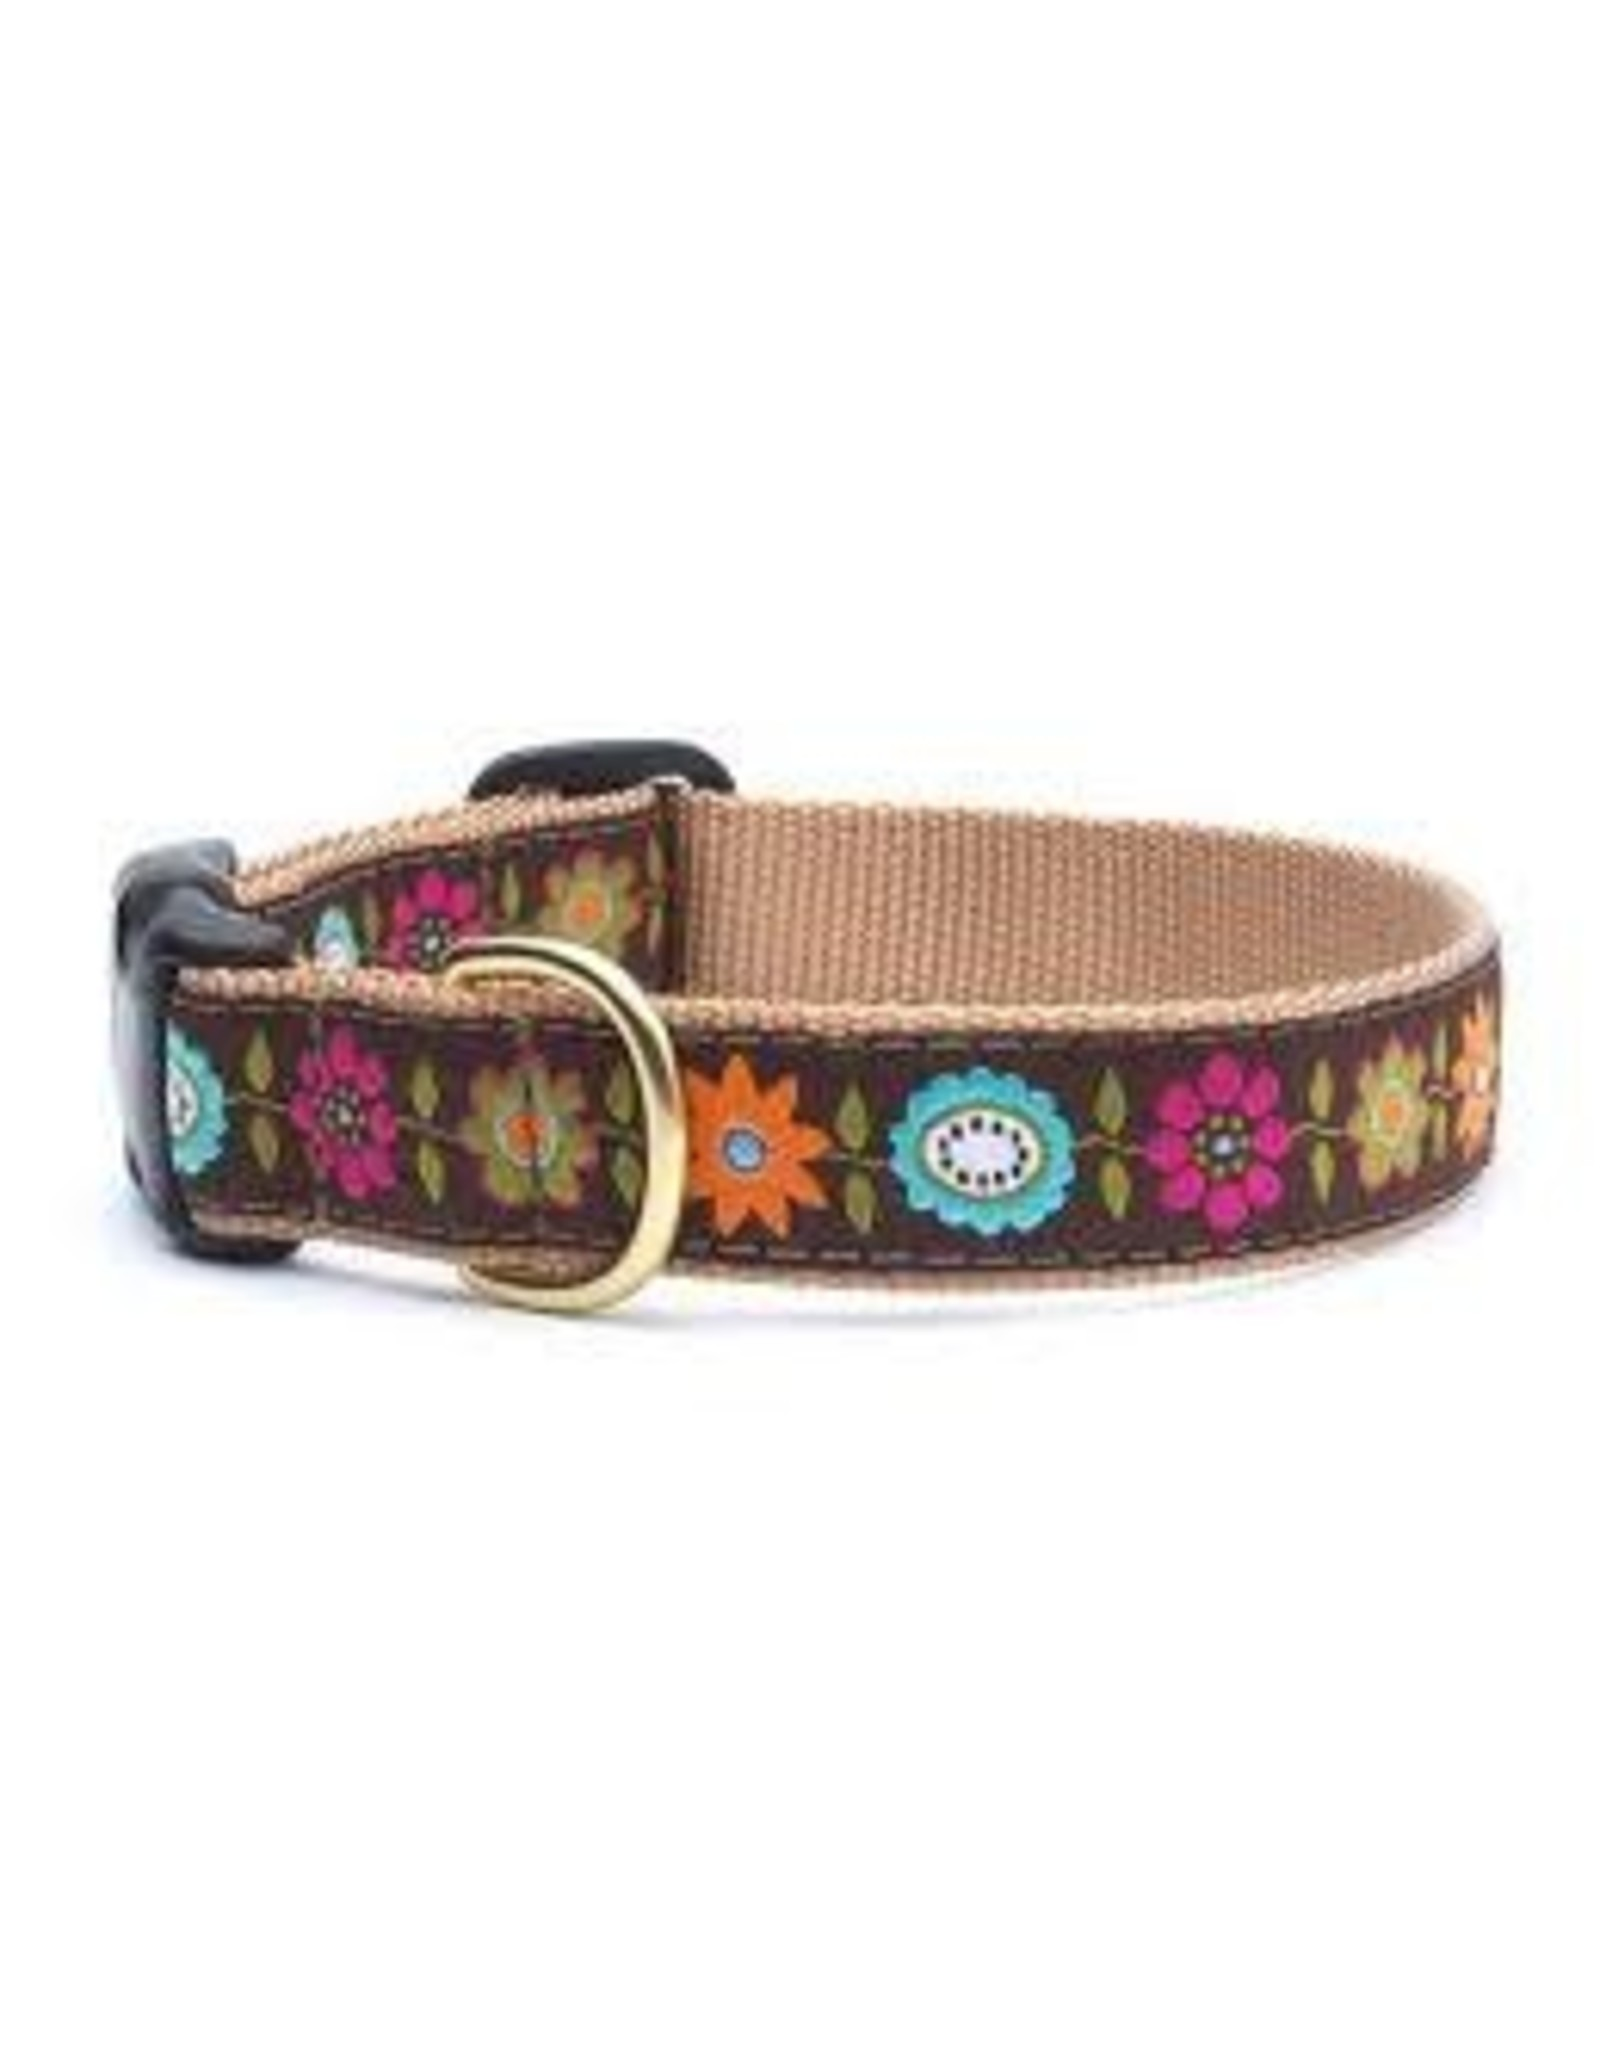 UP COUNTRY UP COUNTRY BELLA FLORAL DOG COLLAR XL